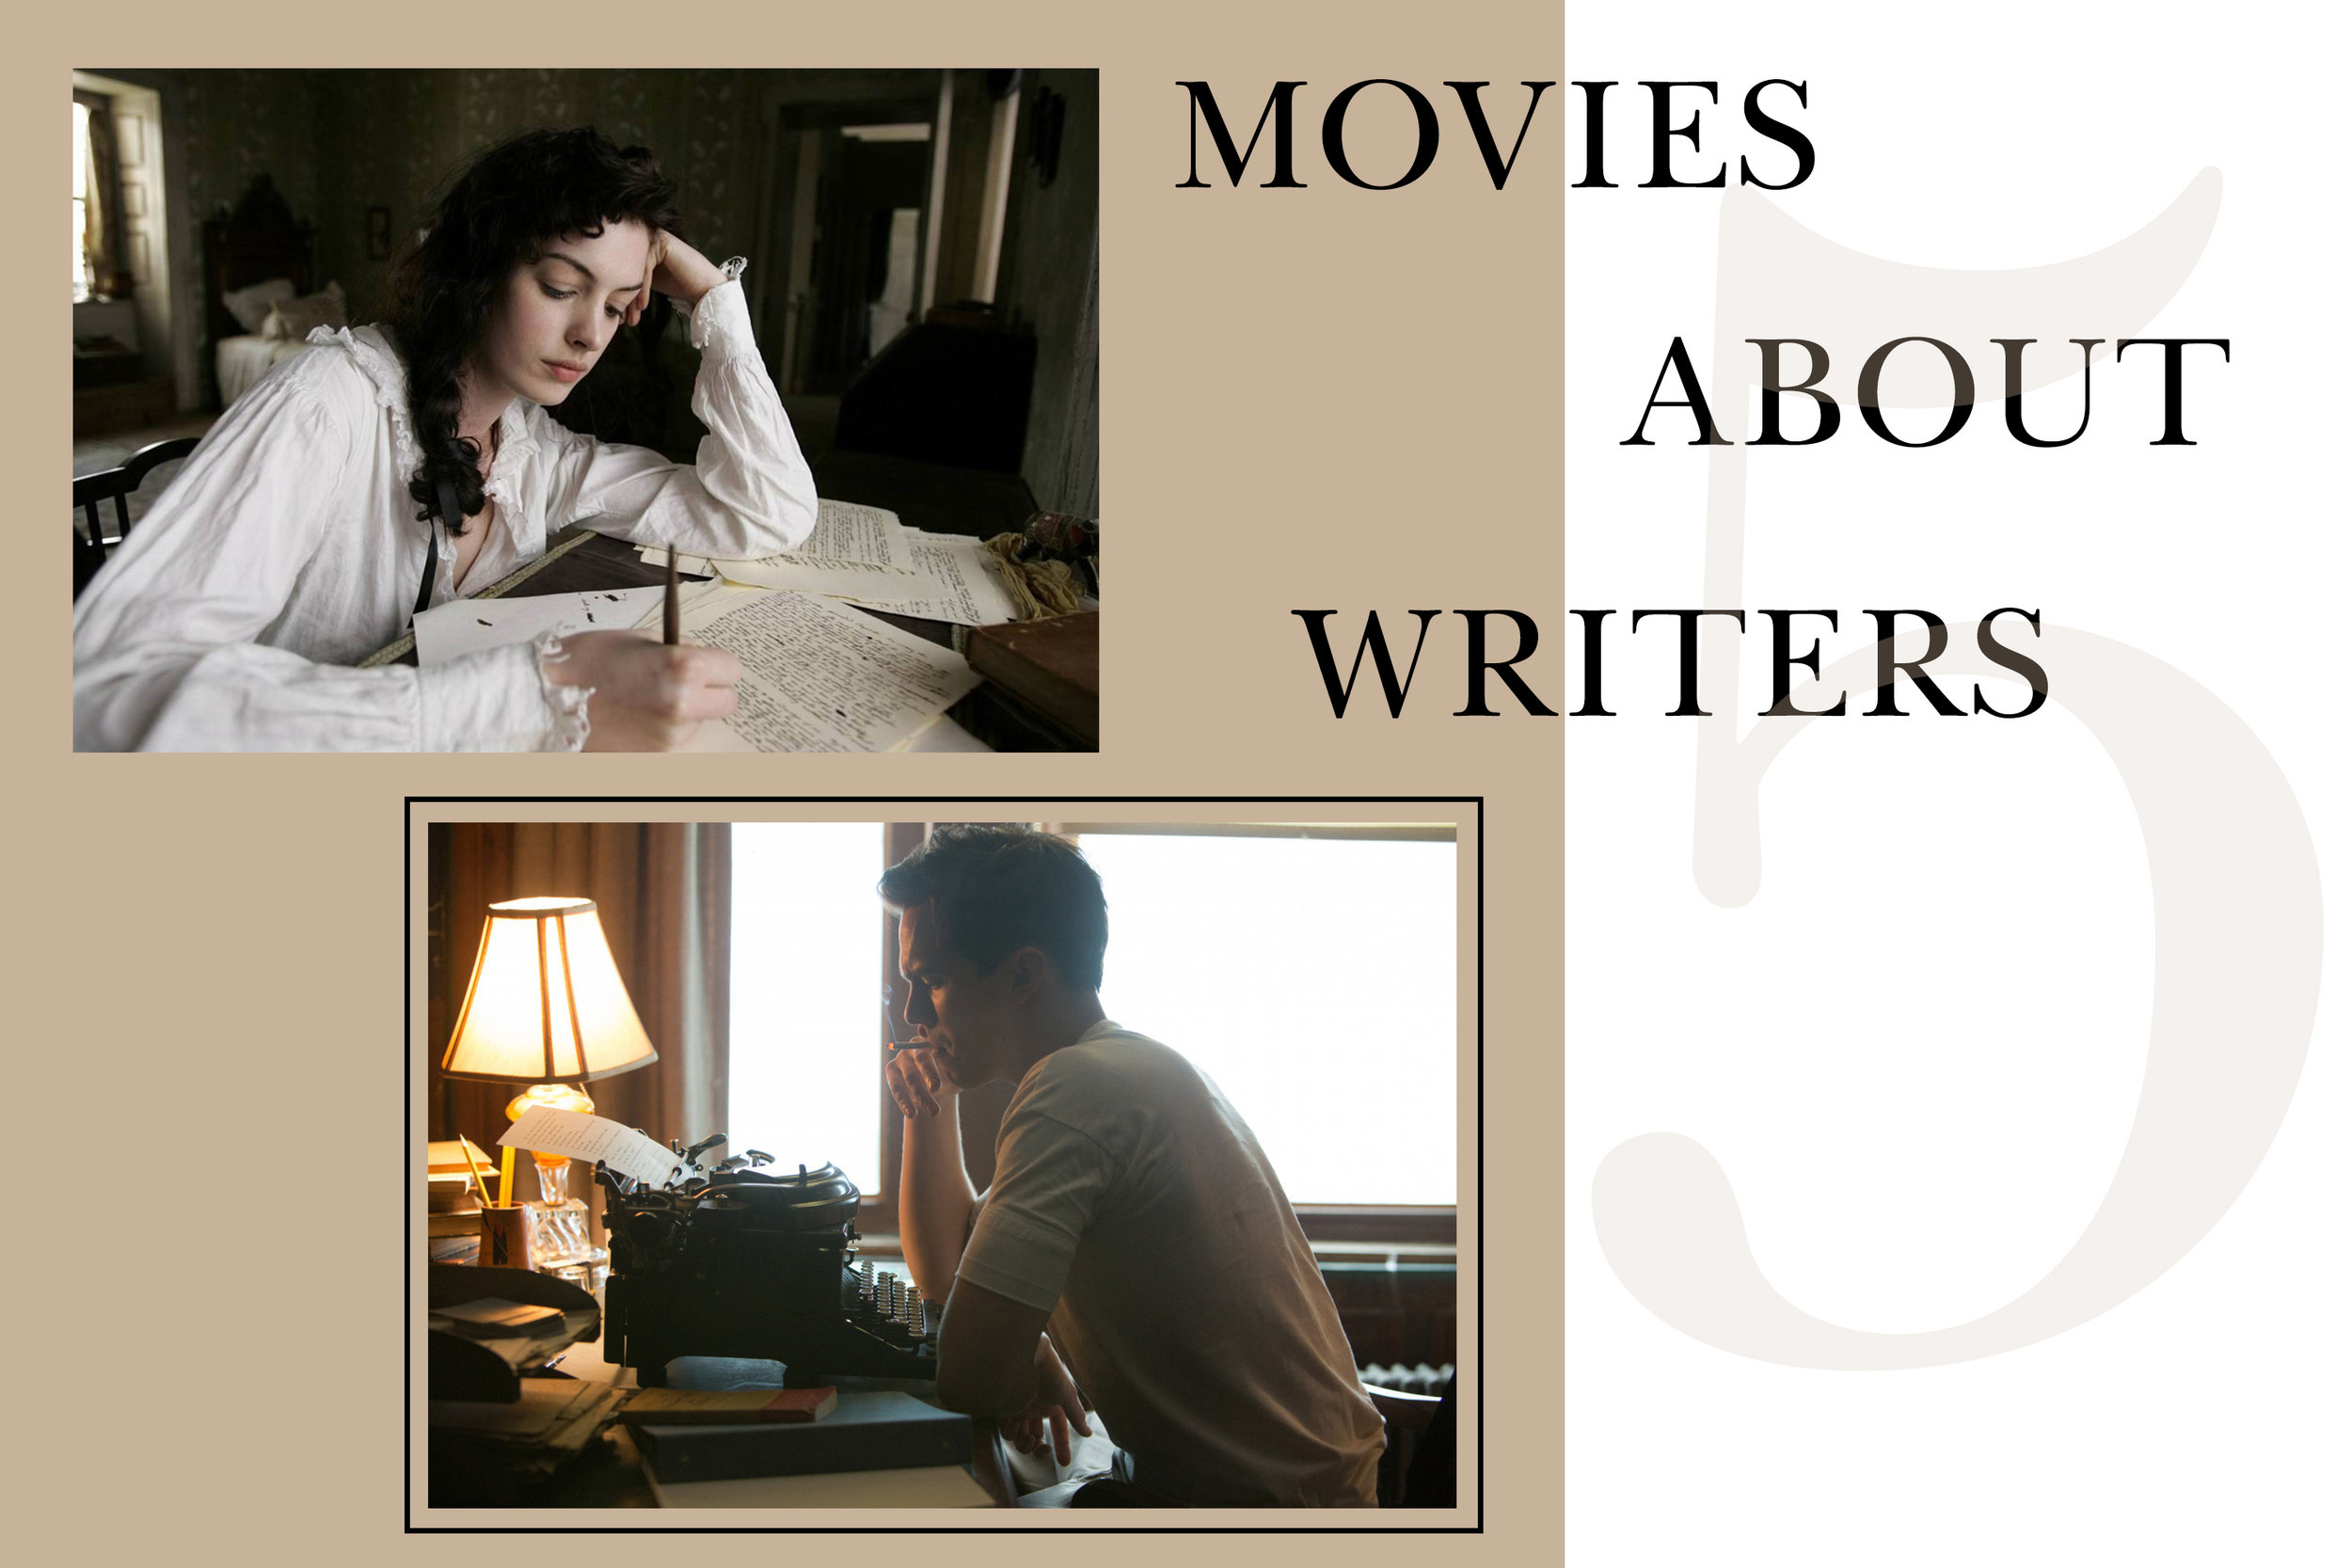 movies-about-writers.jpg